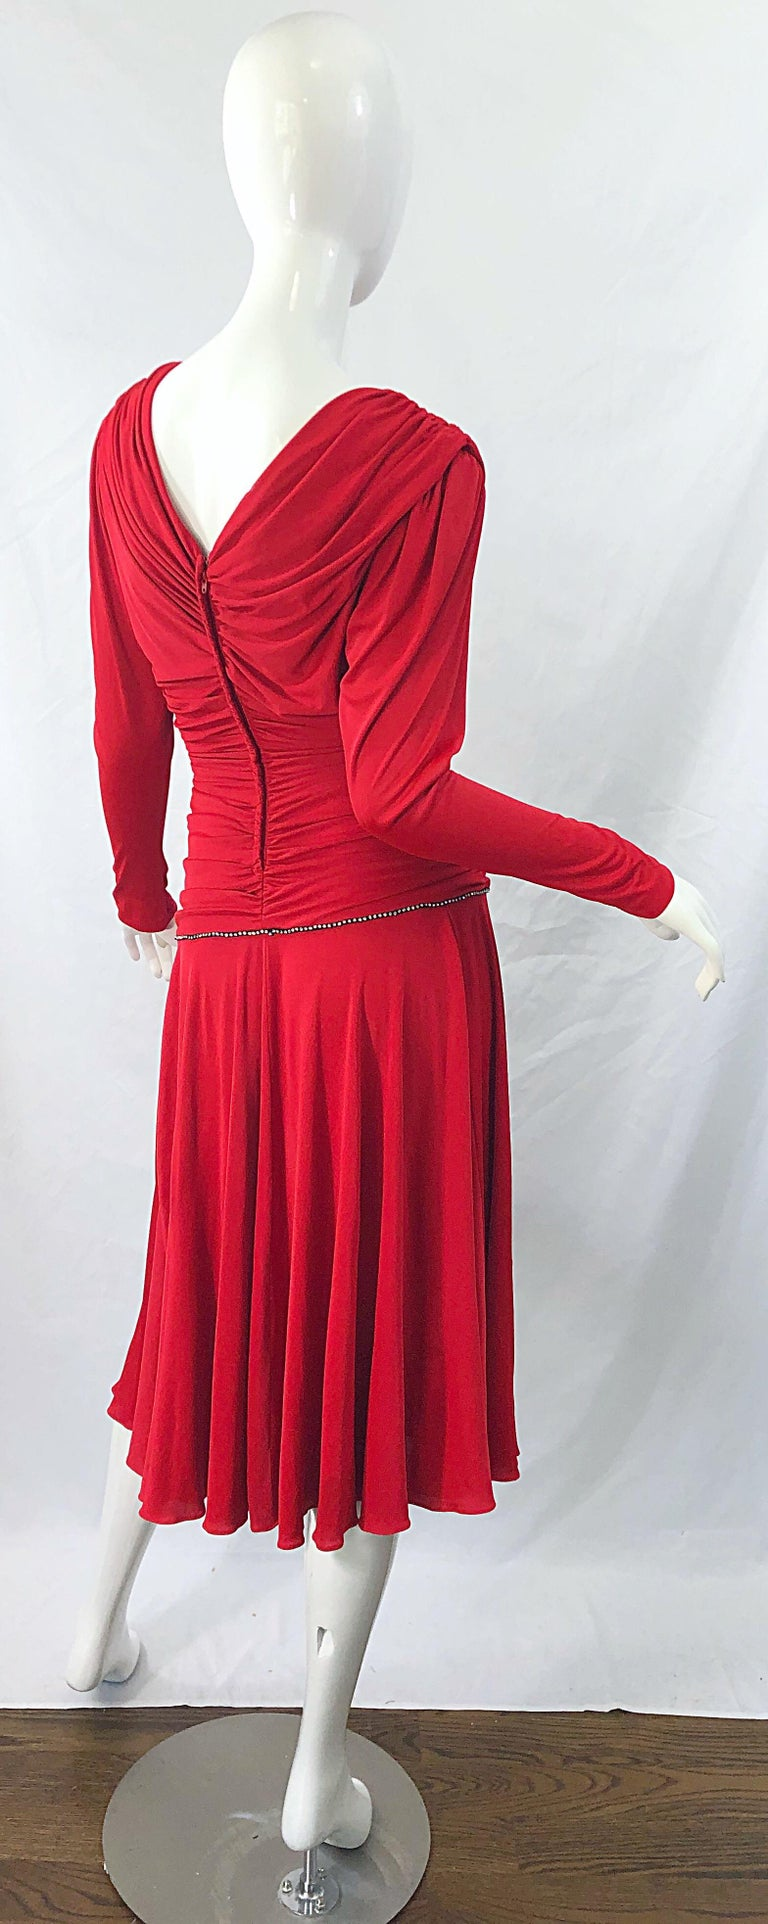 1970s Claraluna Original Lipstick Red Rhinestone Slinky Jersey Vintage 70s Dress In Excellent Condition For Sale In Chicago, IL